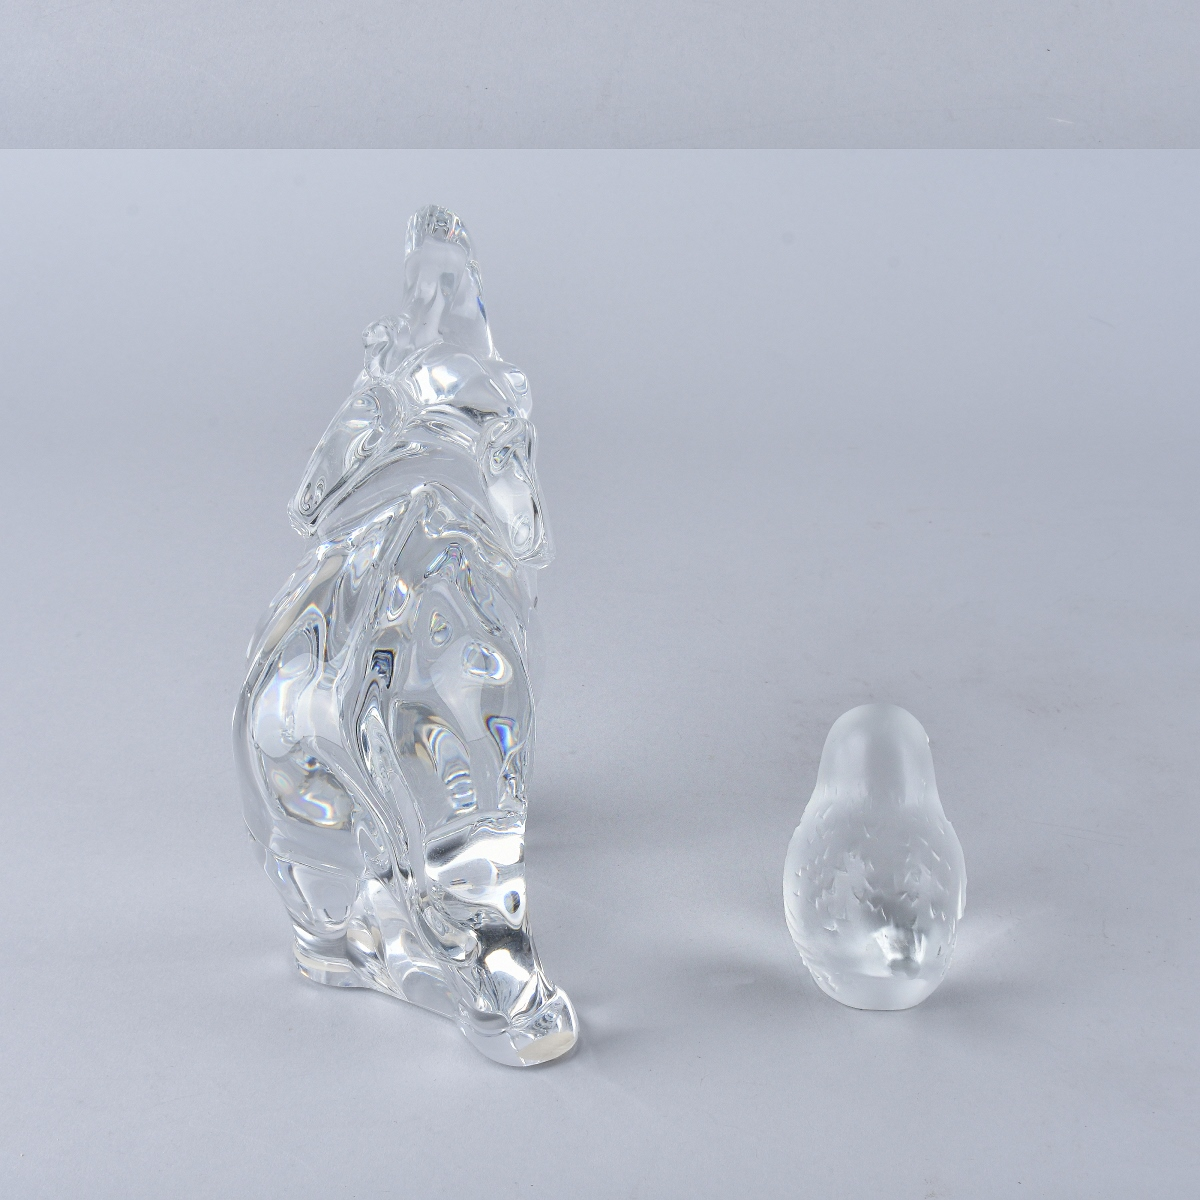 Two Vintage Crystal Figurines Elephant and Bird